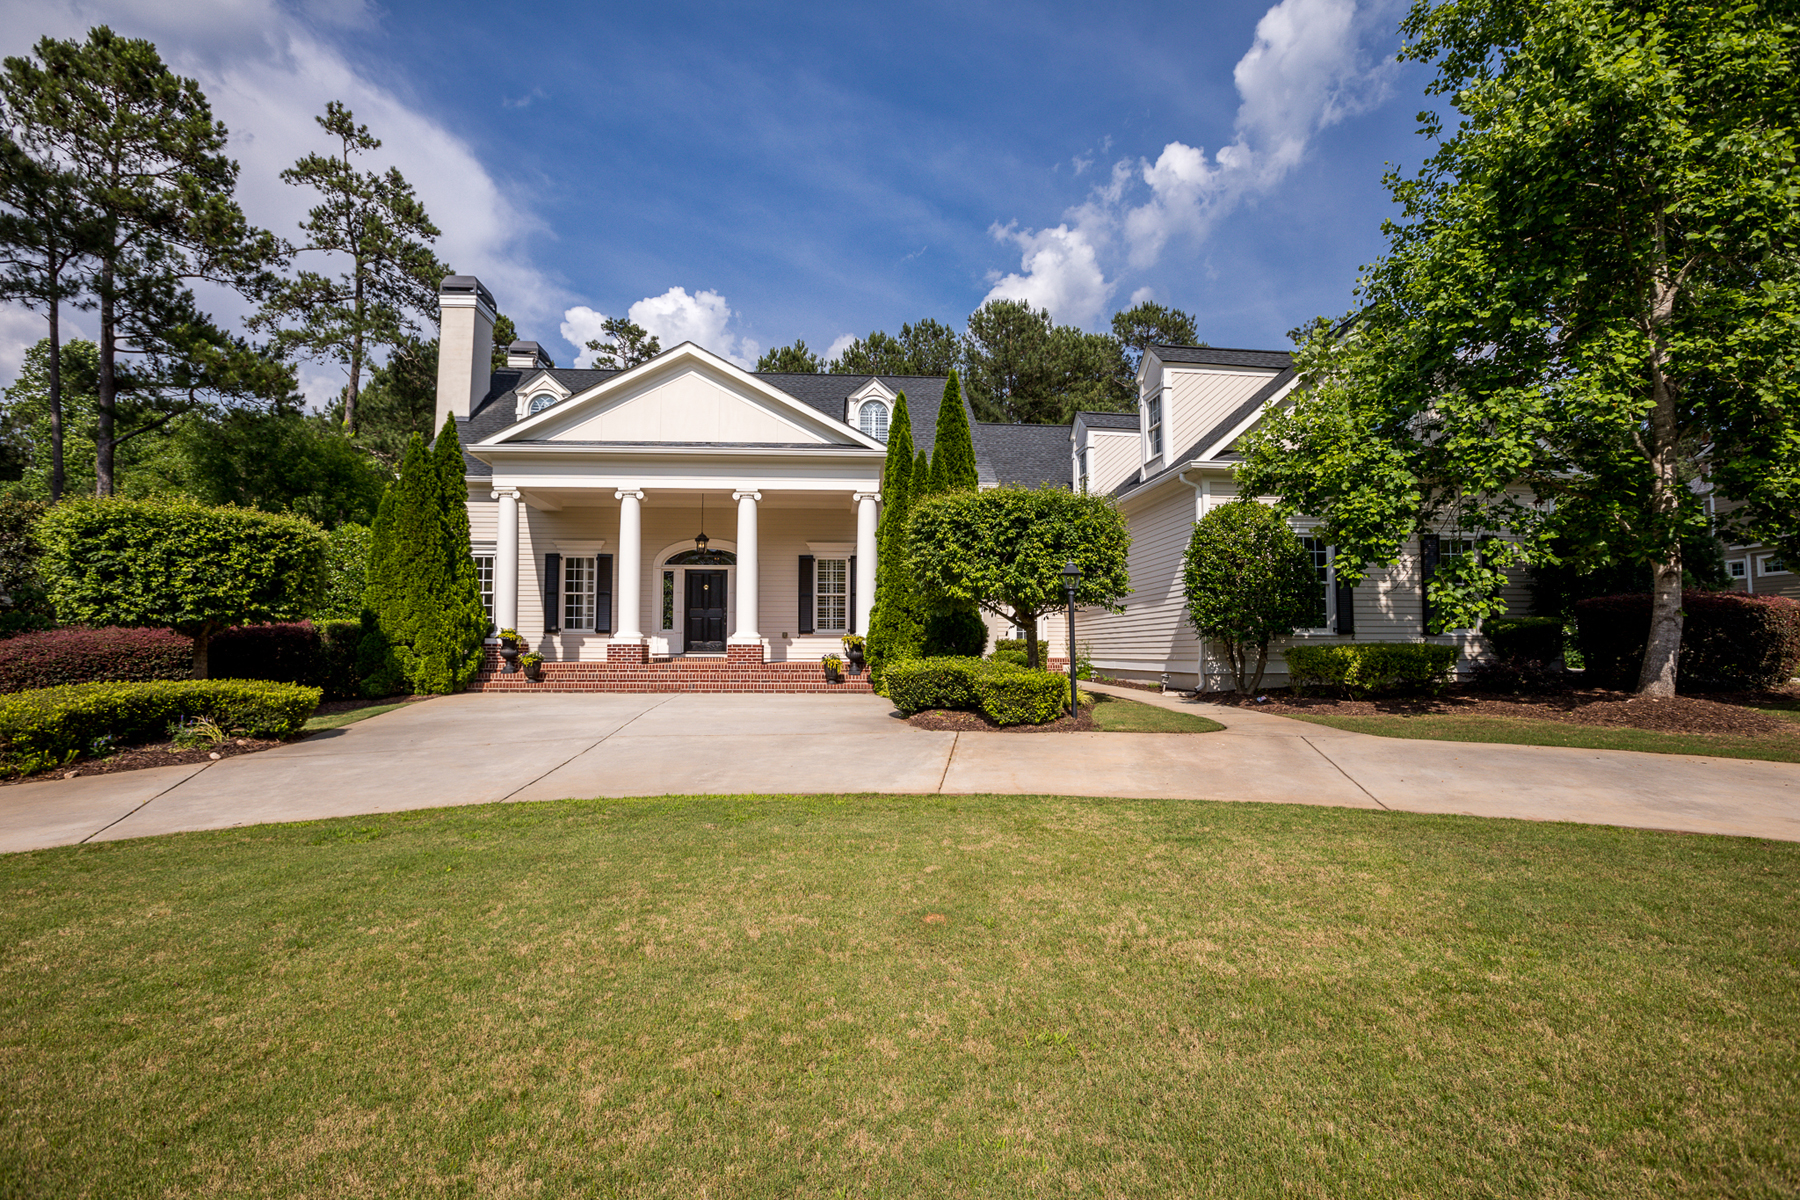 Single Family Homes for Active at Classic Highgrove Home Designed By William Poole 310 Highgrove Drive Fayetteville, Georgia 30215 United States